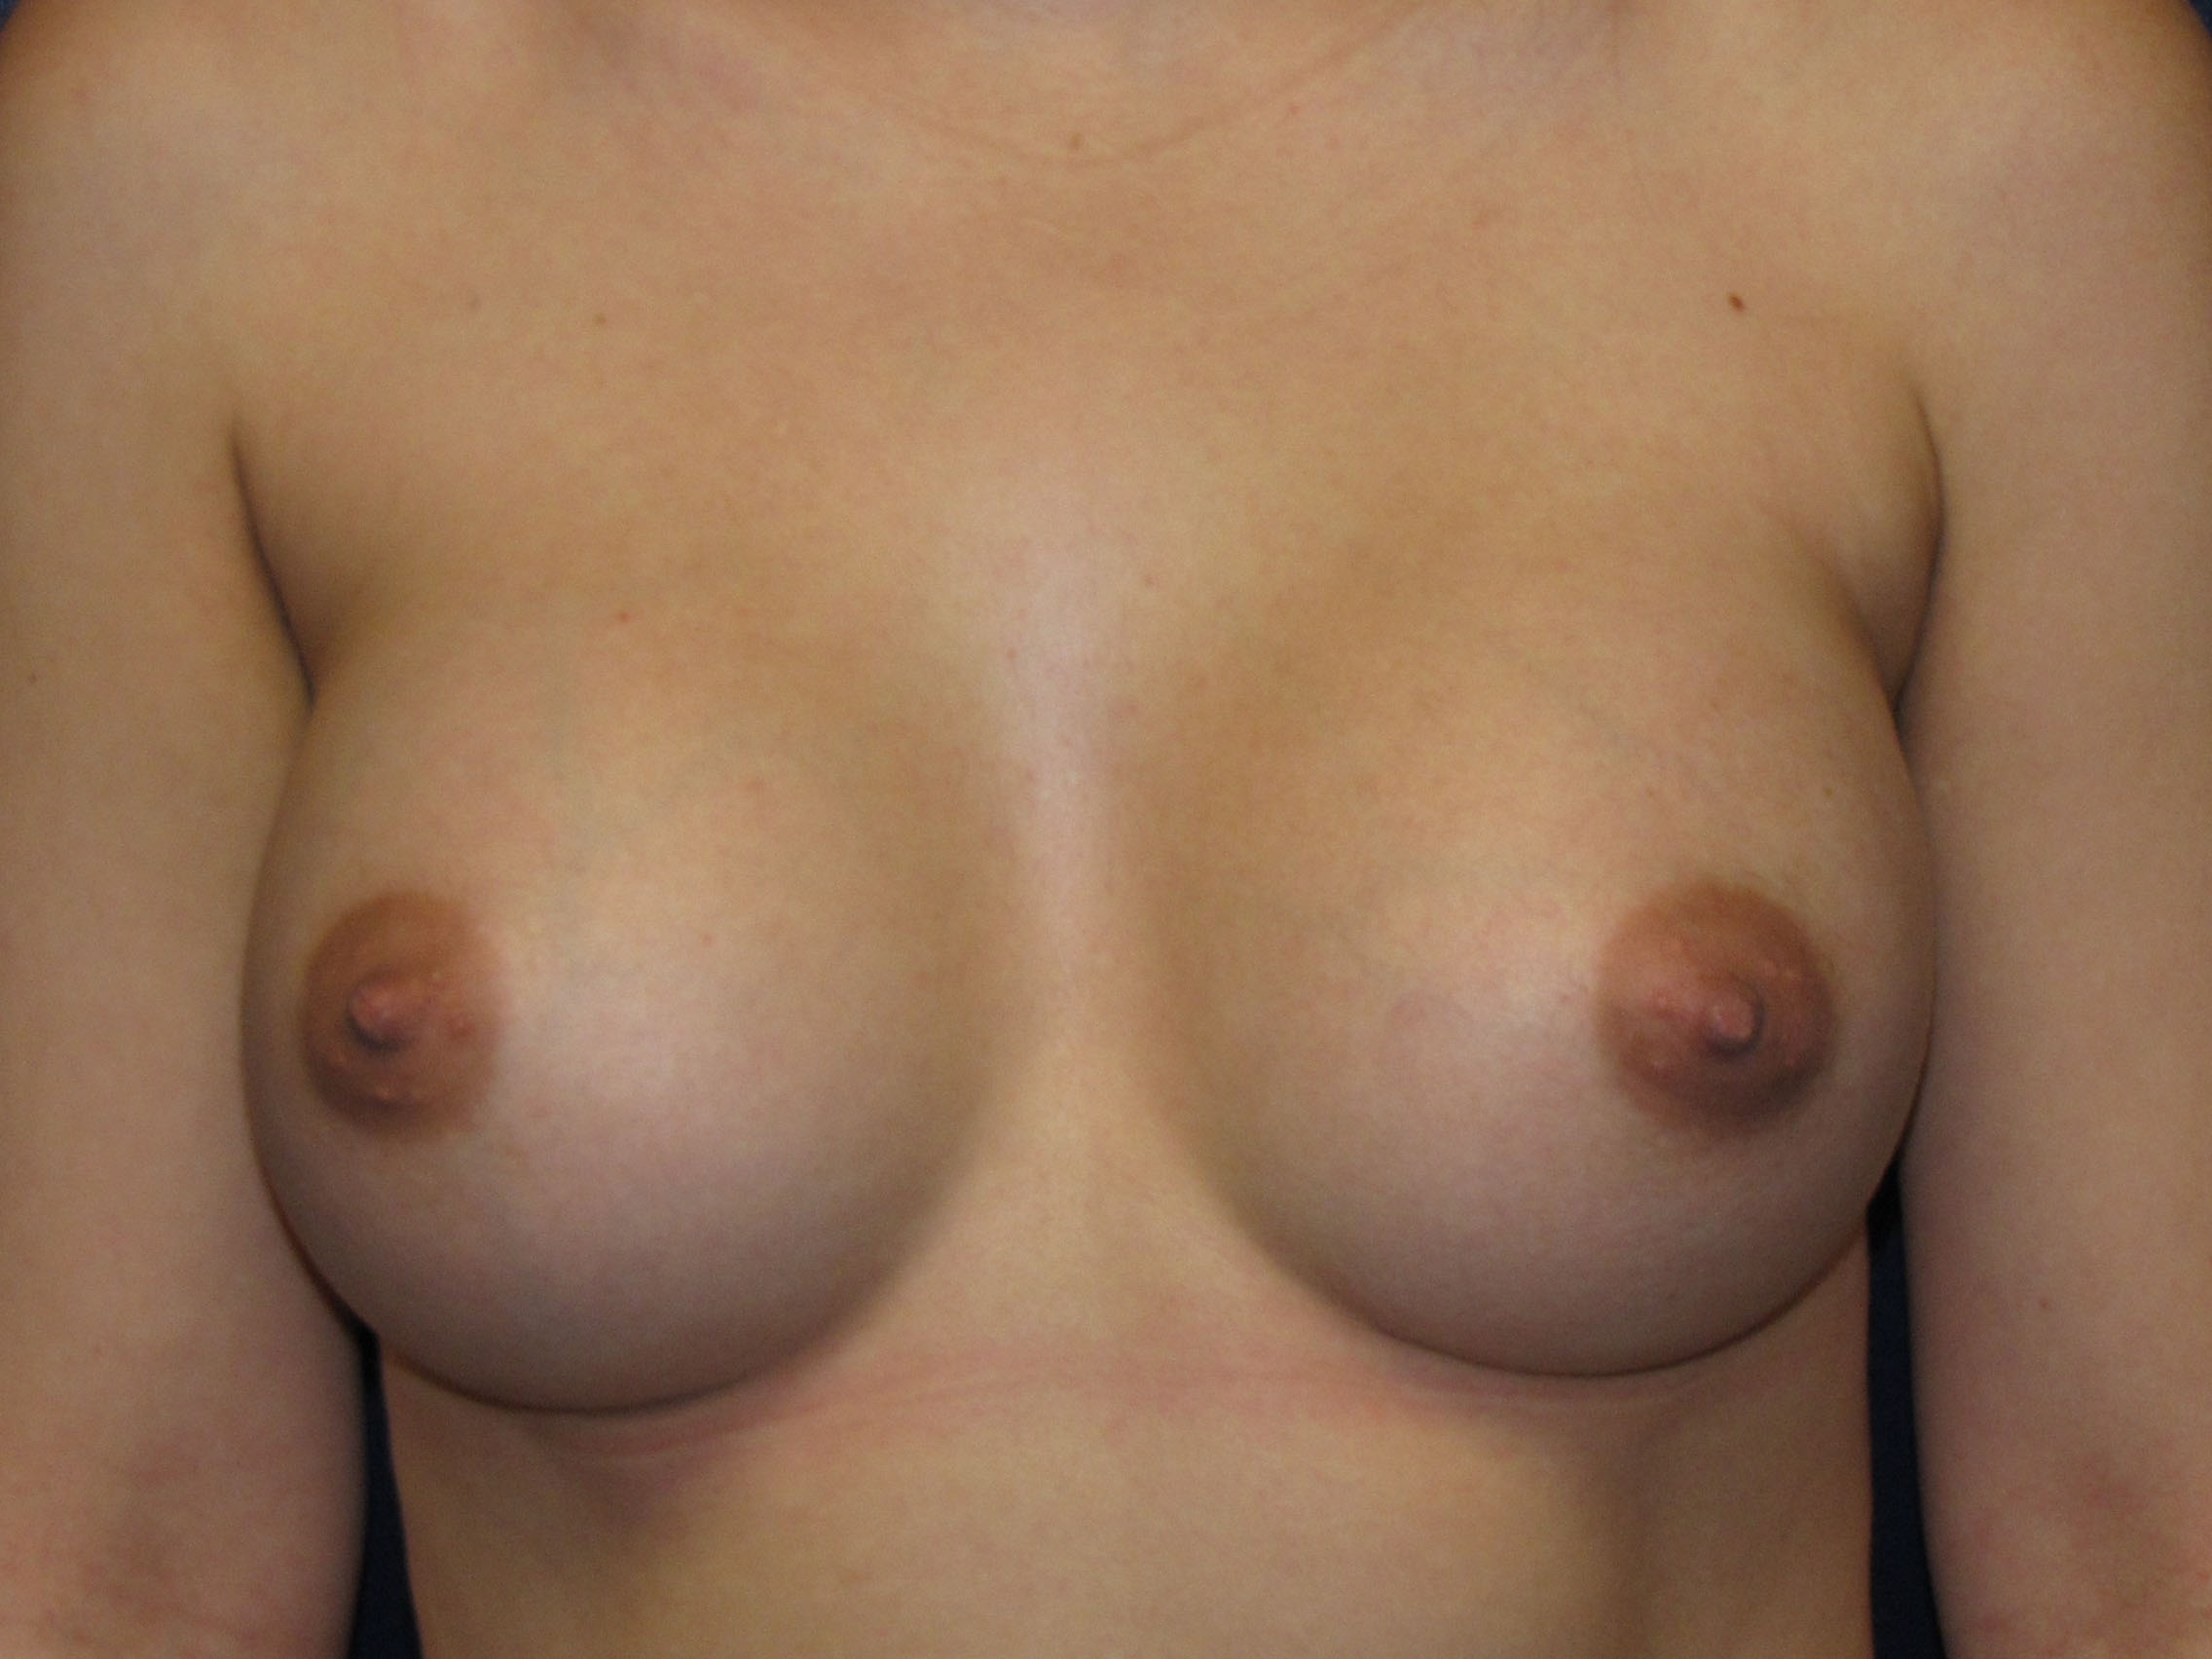 B) After breast implant exchange, going from saline to silicone